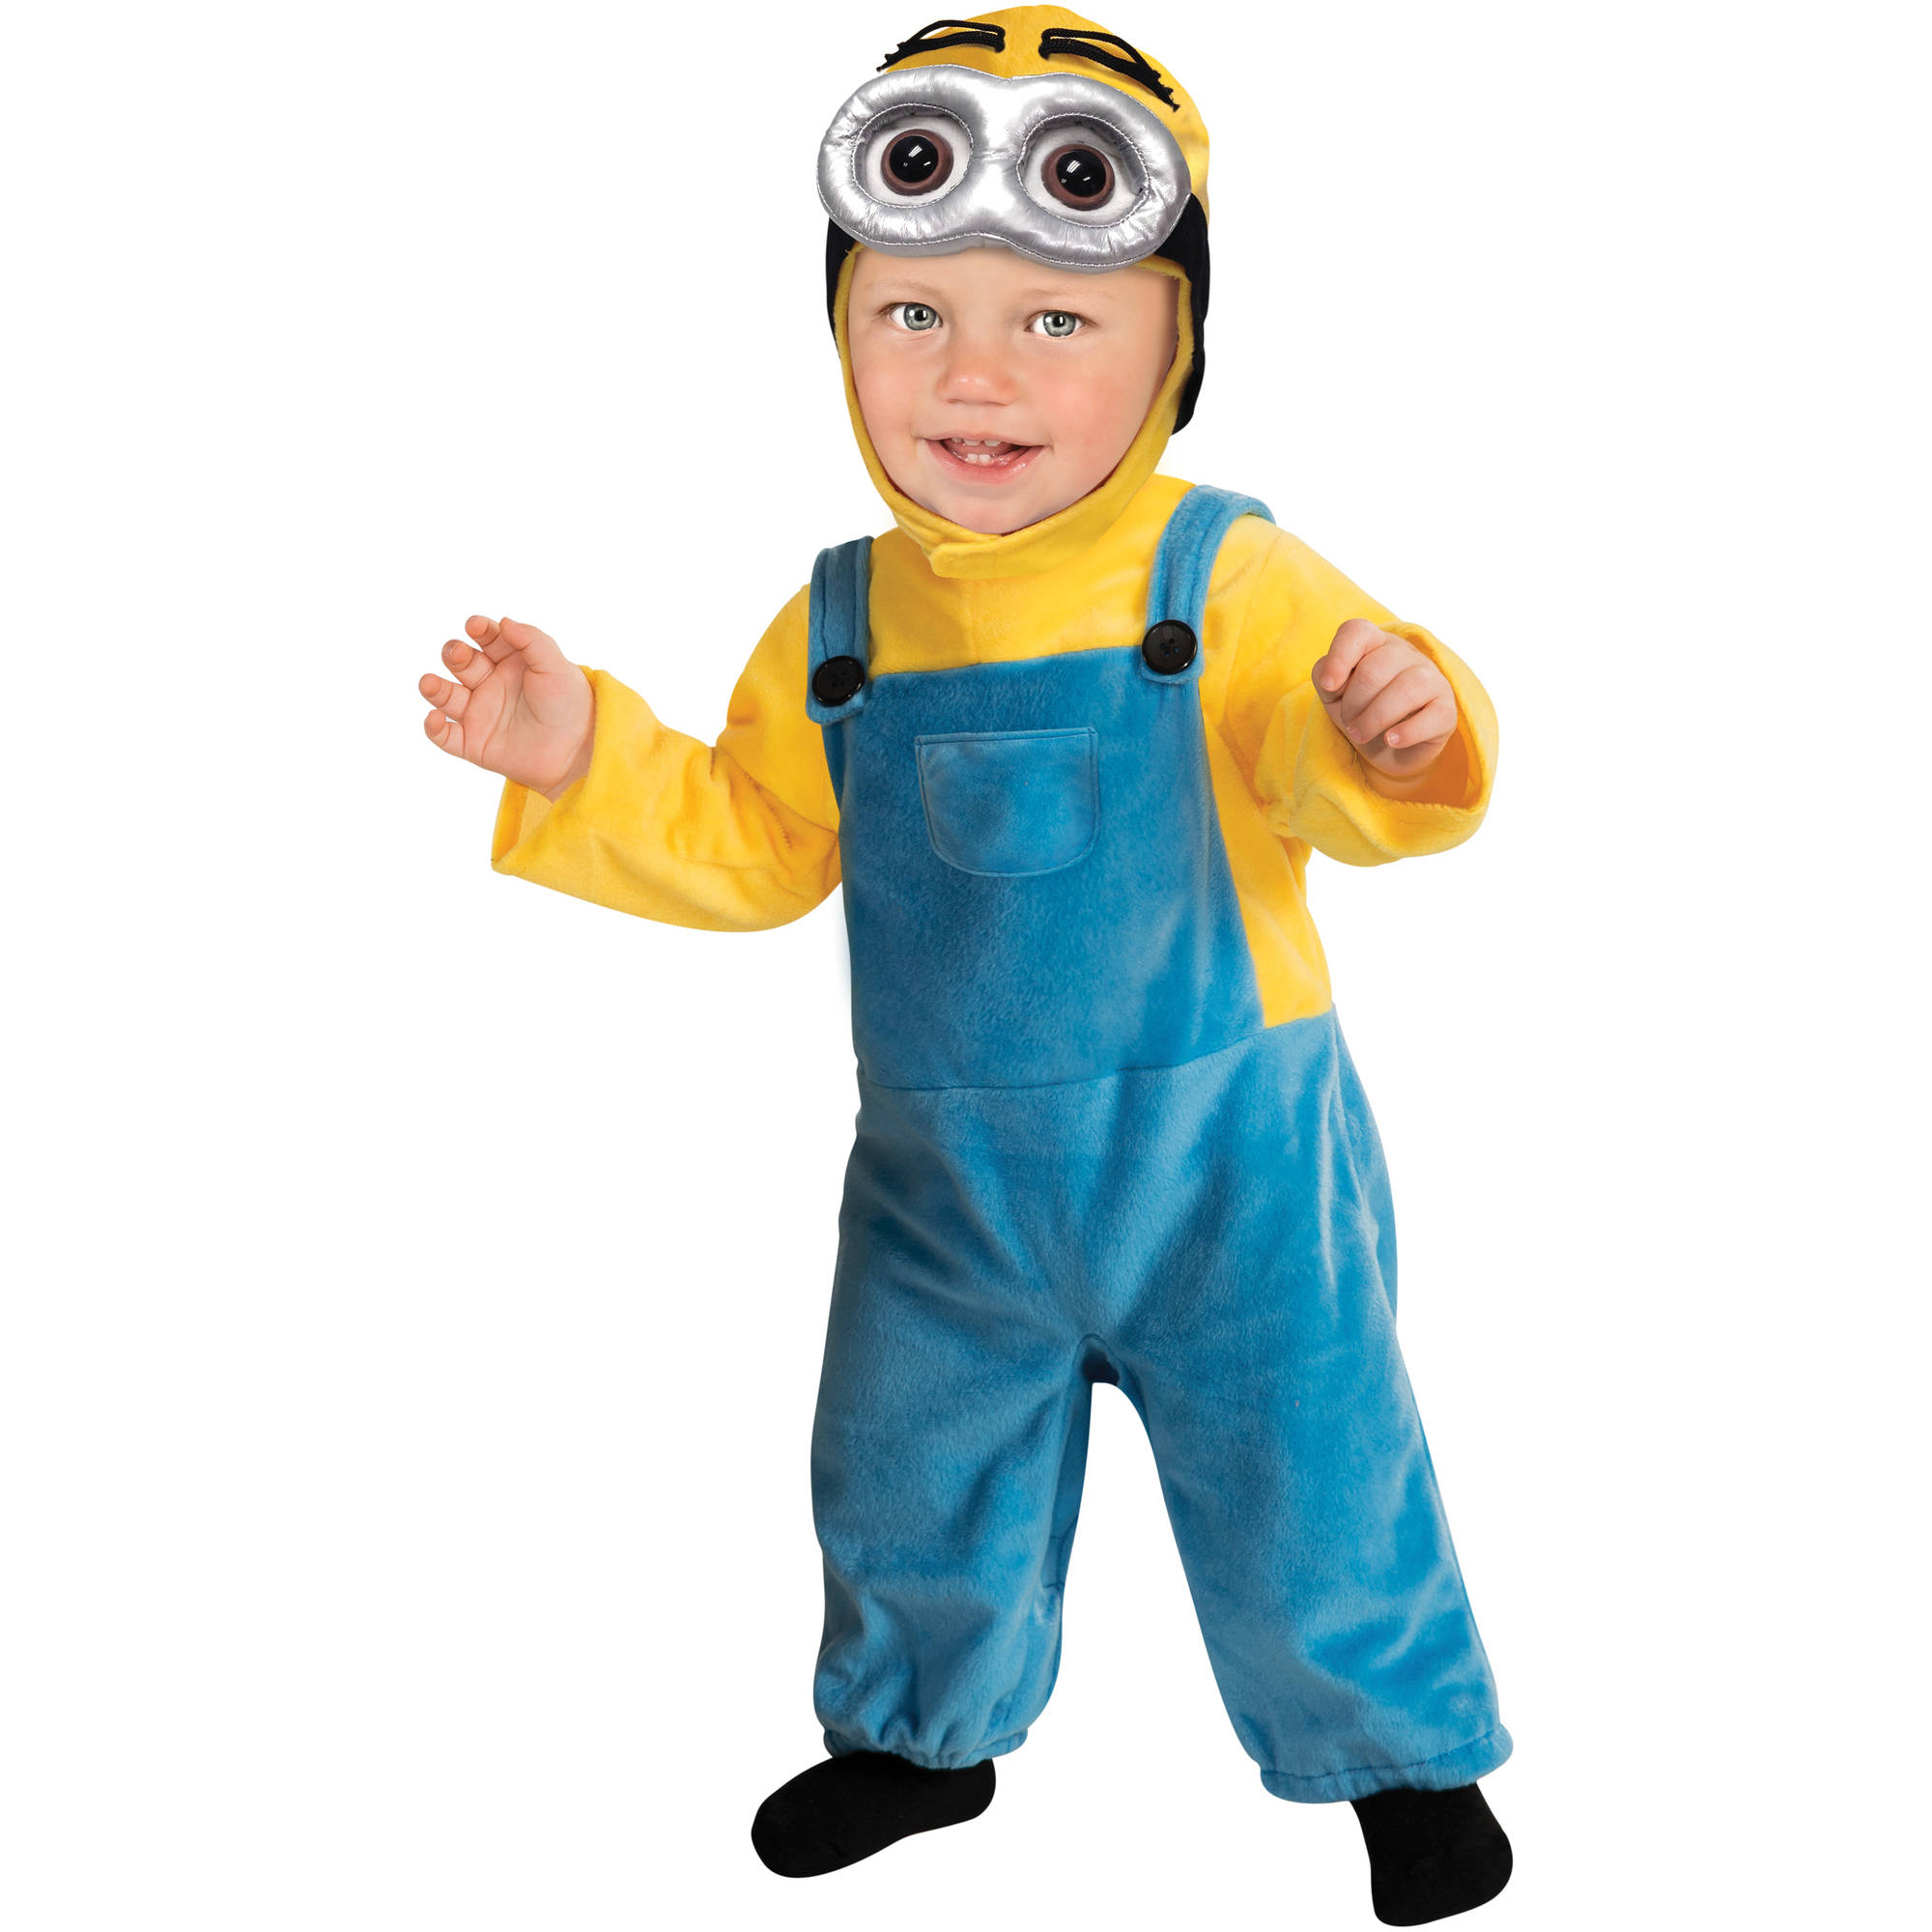 Minion Toddler Jumpsuit Halloween Costume  sc 1 st  Walmart & Minion Toddler Jumpsuit Halloween Costume - Walmart.com